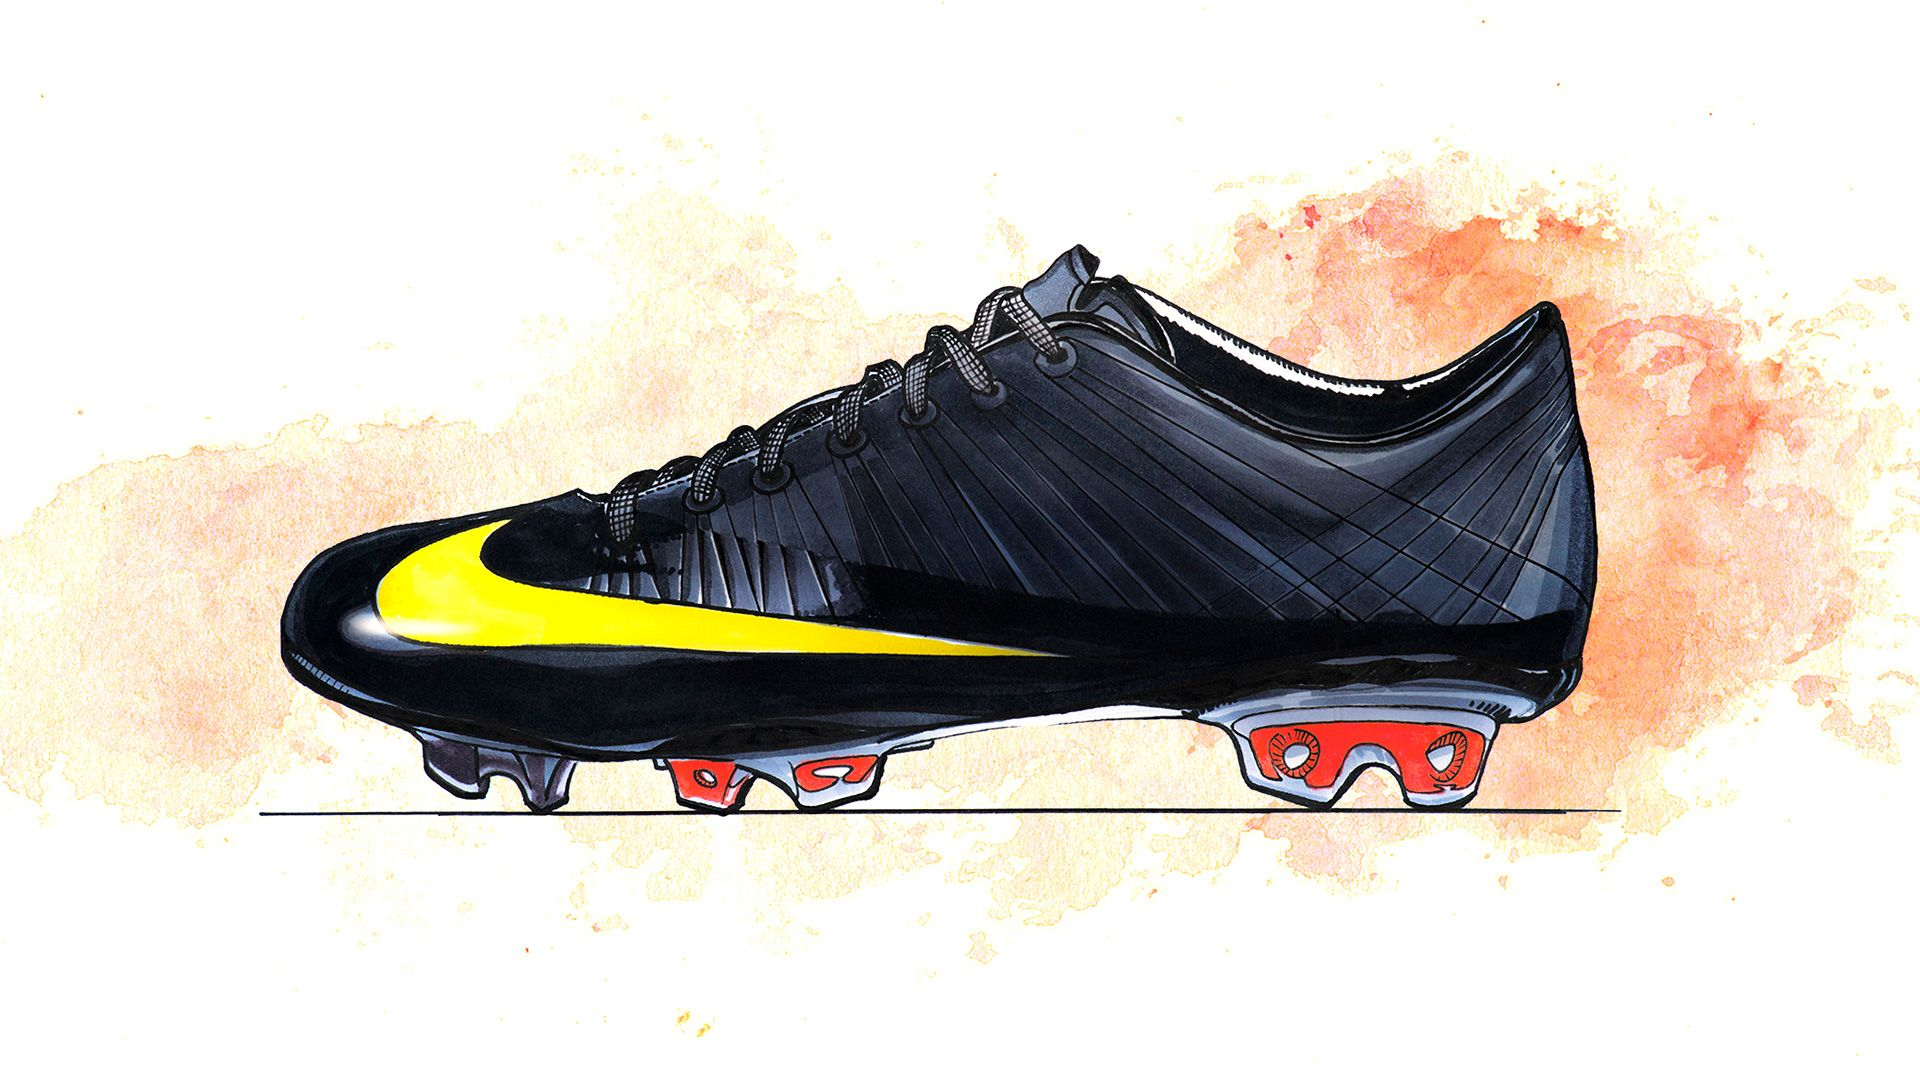 edd496db2557 20 Years of Mercurial History. Nike.com